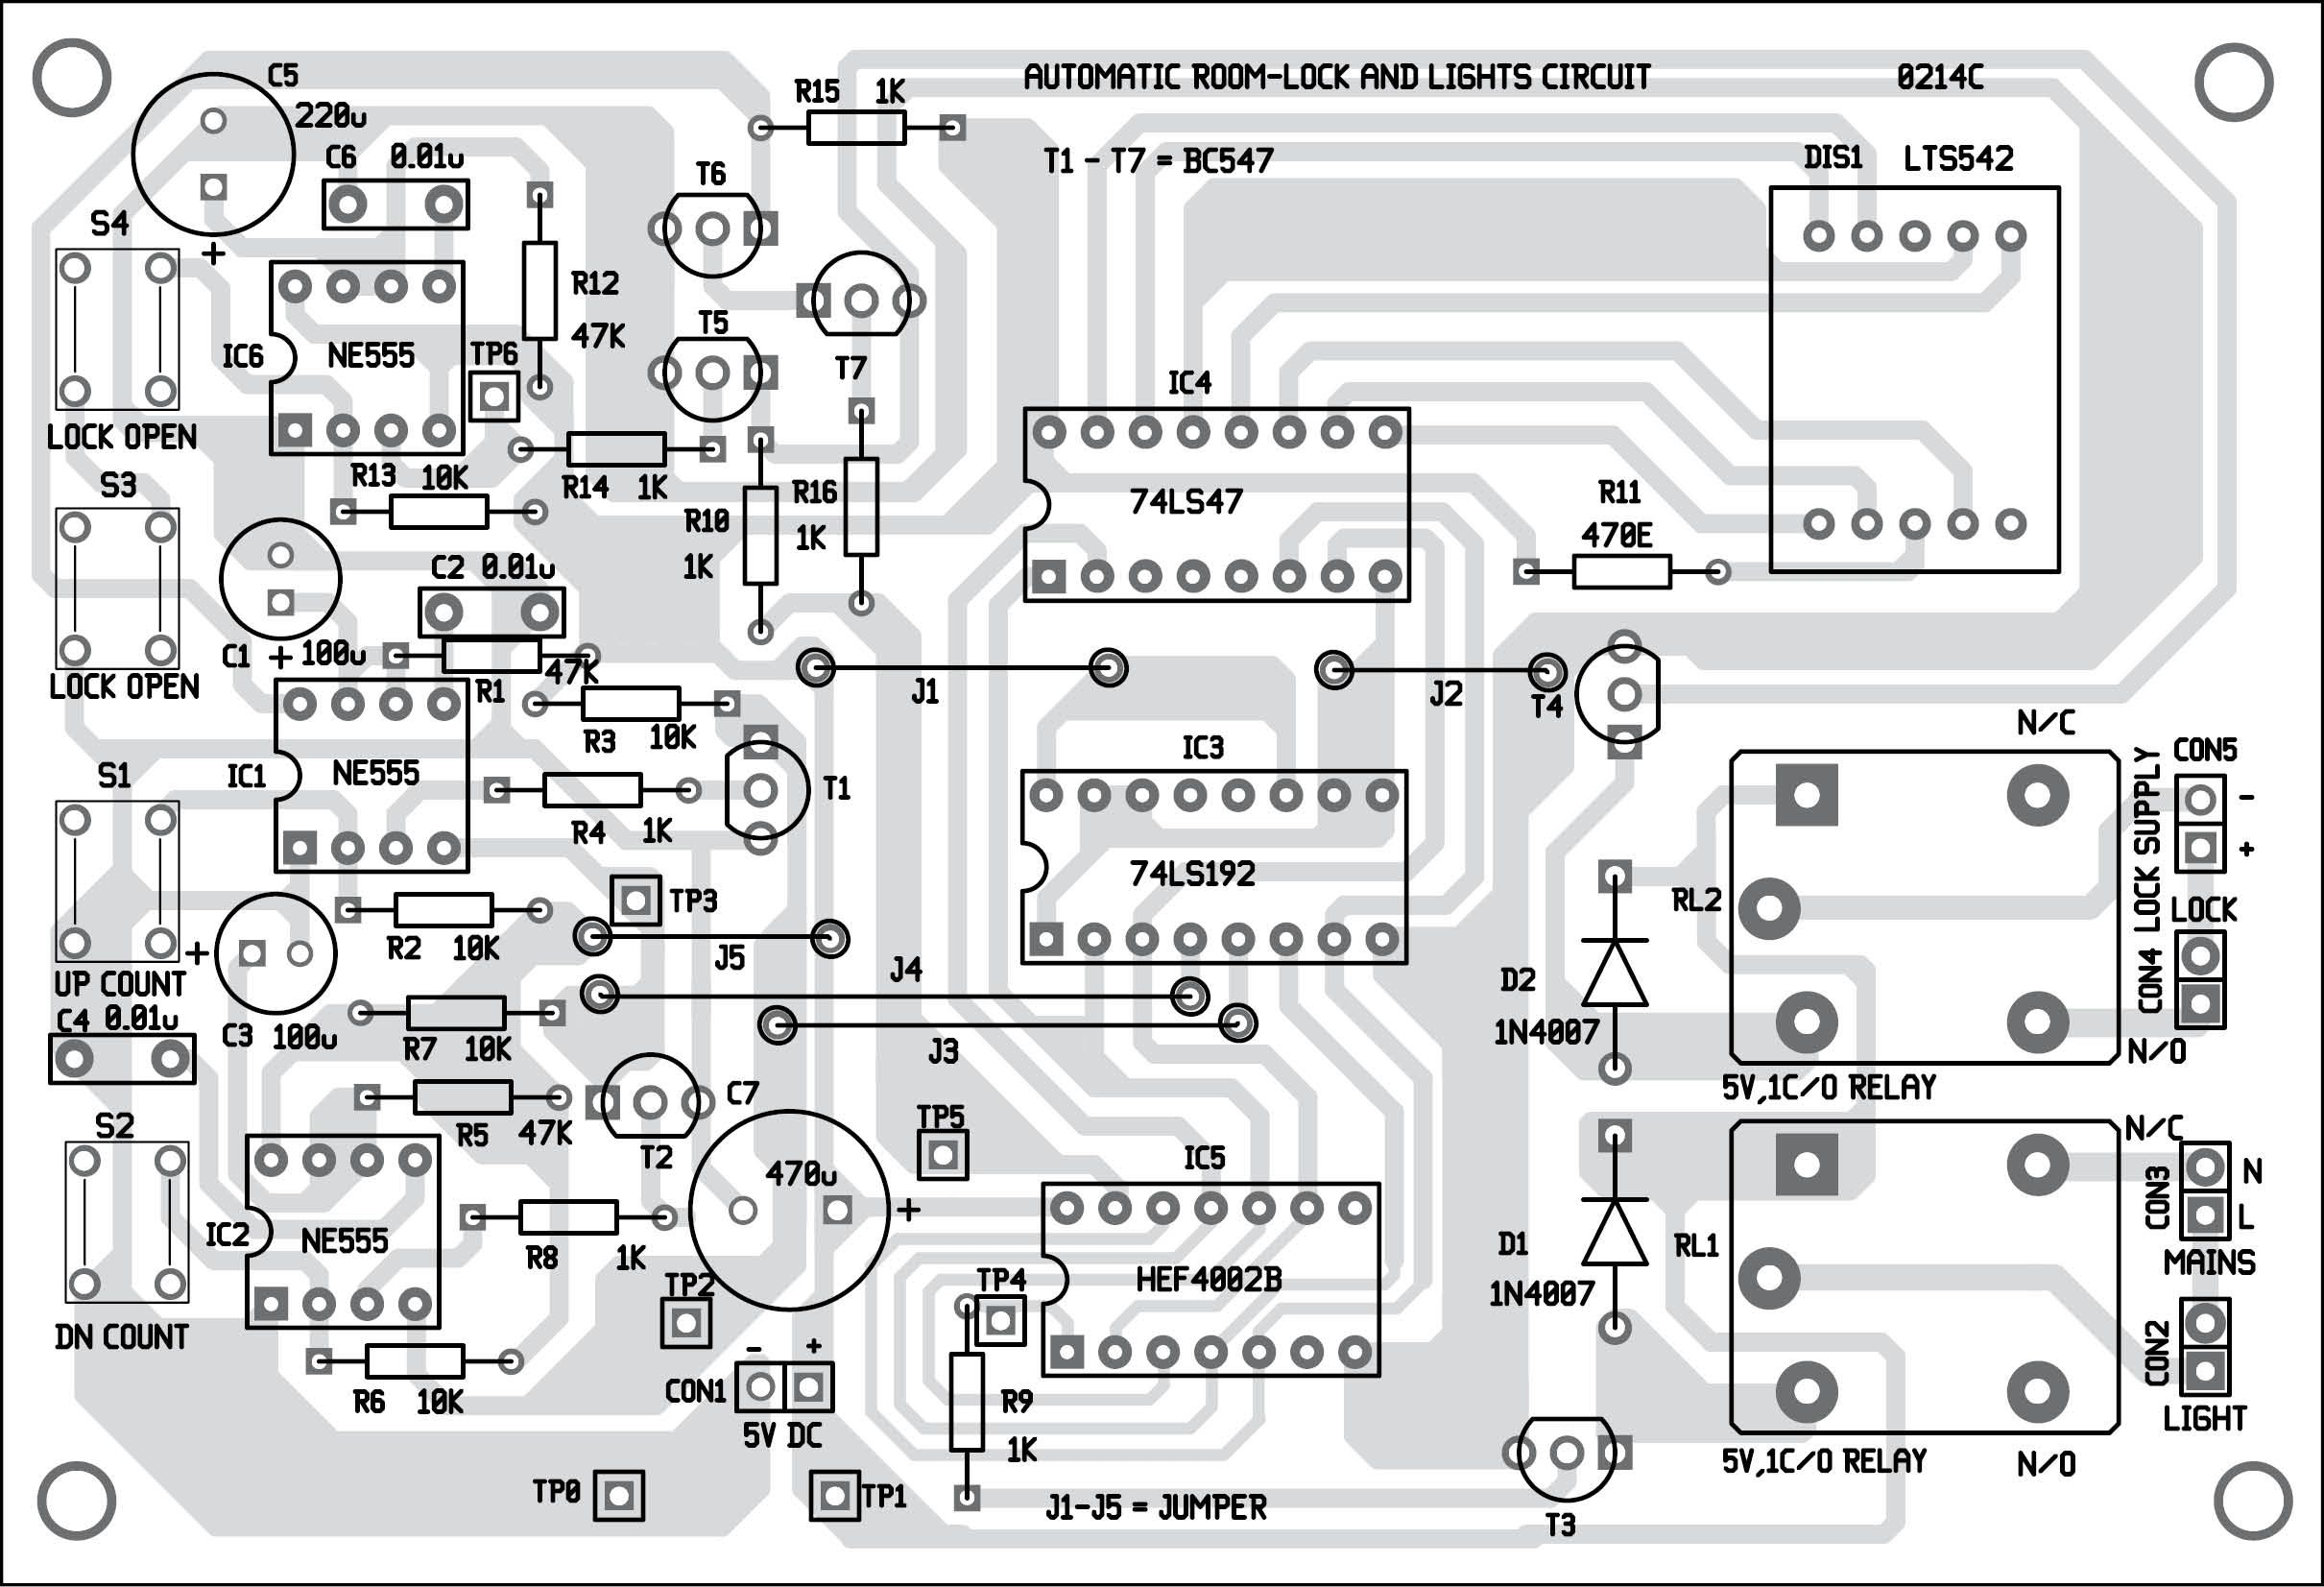 Automatic night light pcb layout - Automatic Room Lock And Lights Circuit This Circuit Counts And Indicates Up To Nine